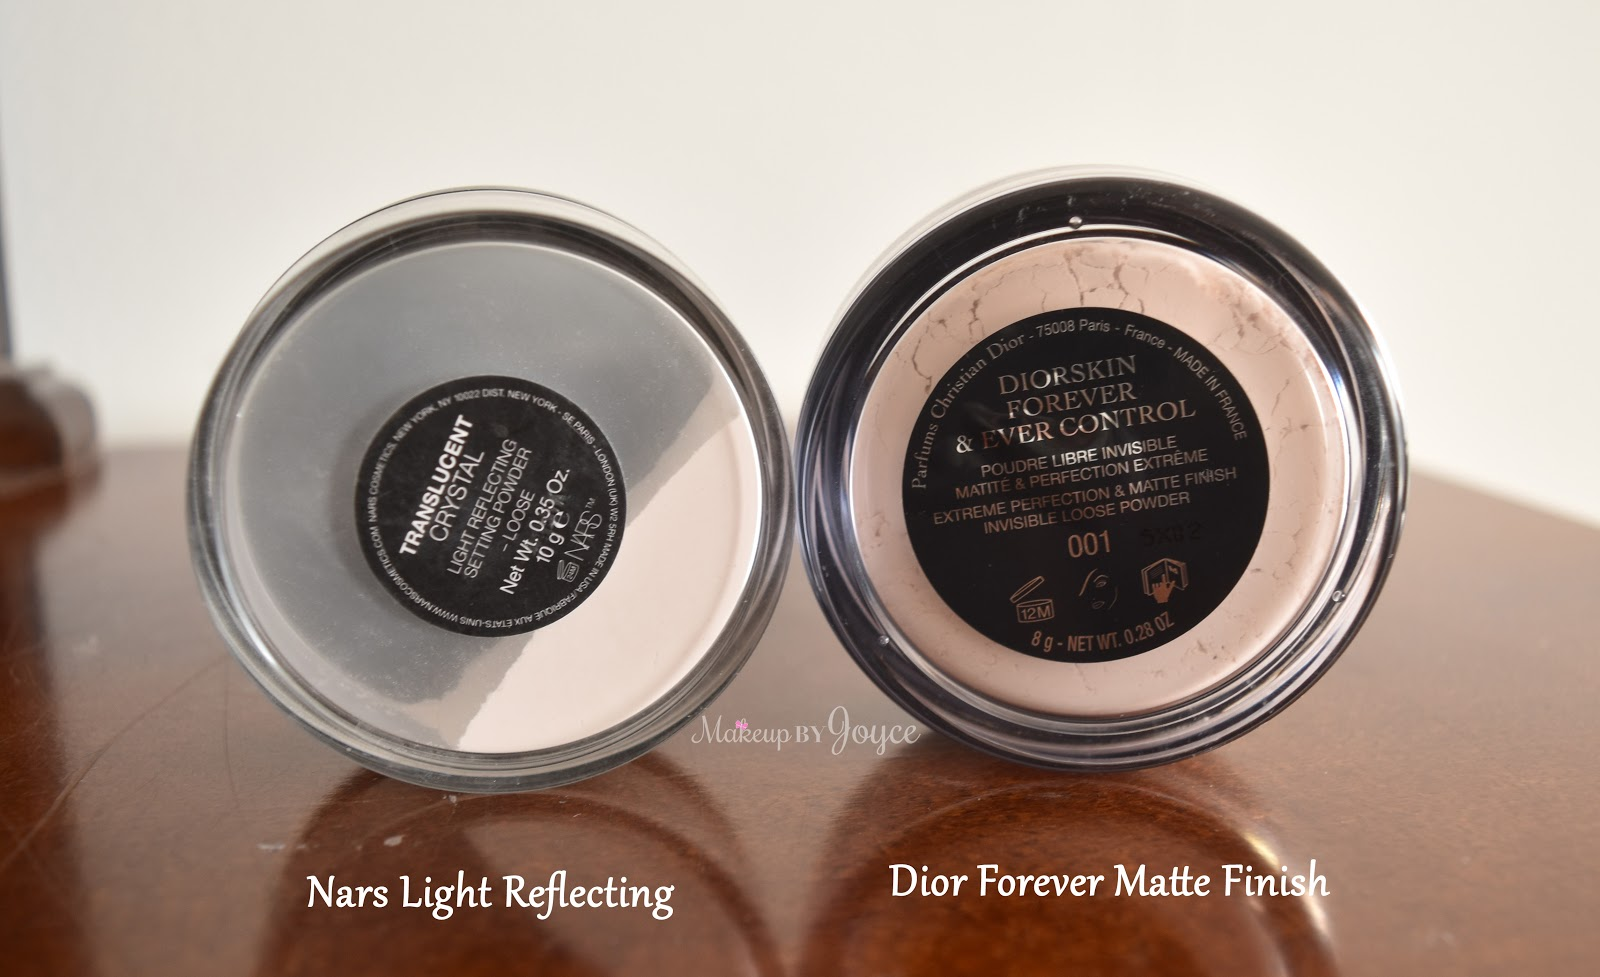 Diorskin Forever & Ever Control Loose Powder by Dior #14